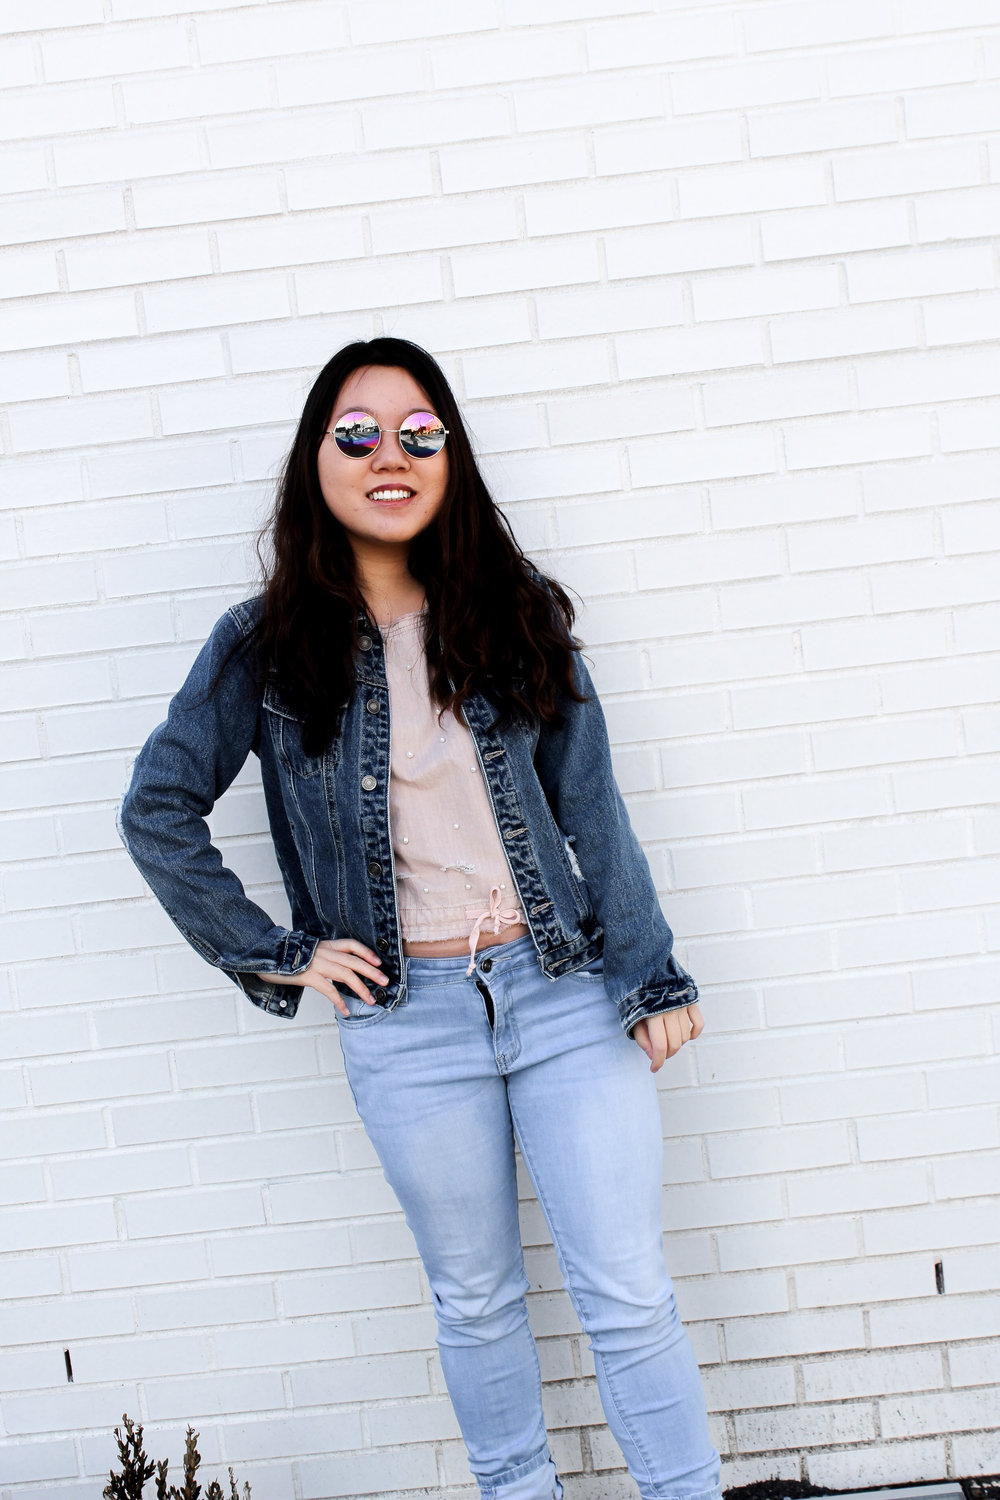 These rainbow shades turn a casual outfit into a badass look fit for the streets! - Amber Hsu